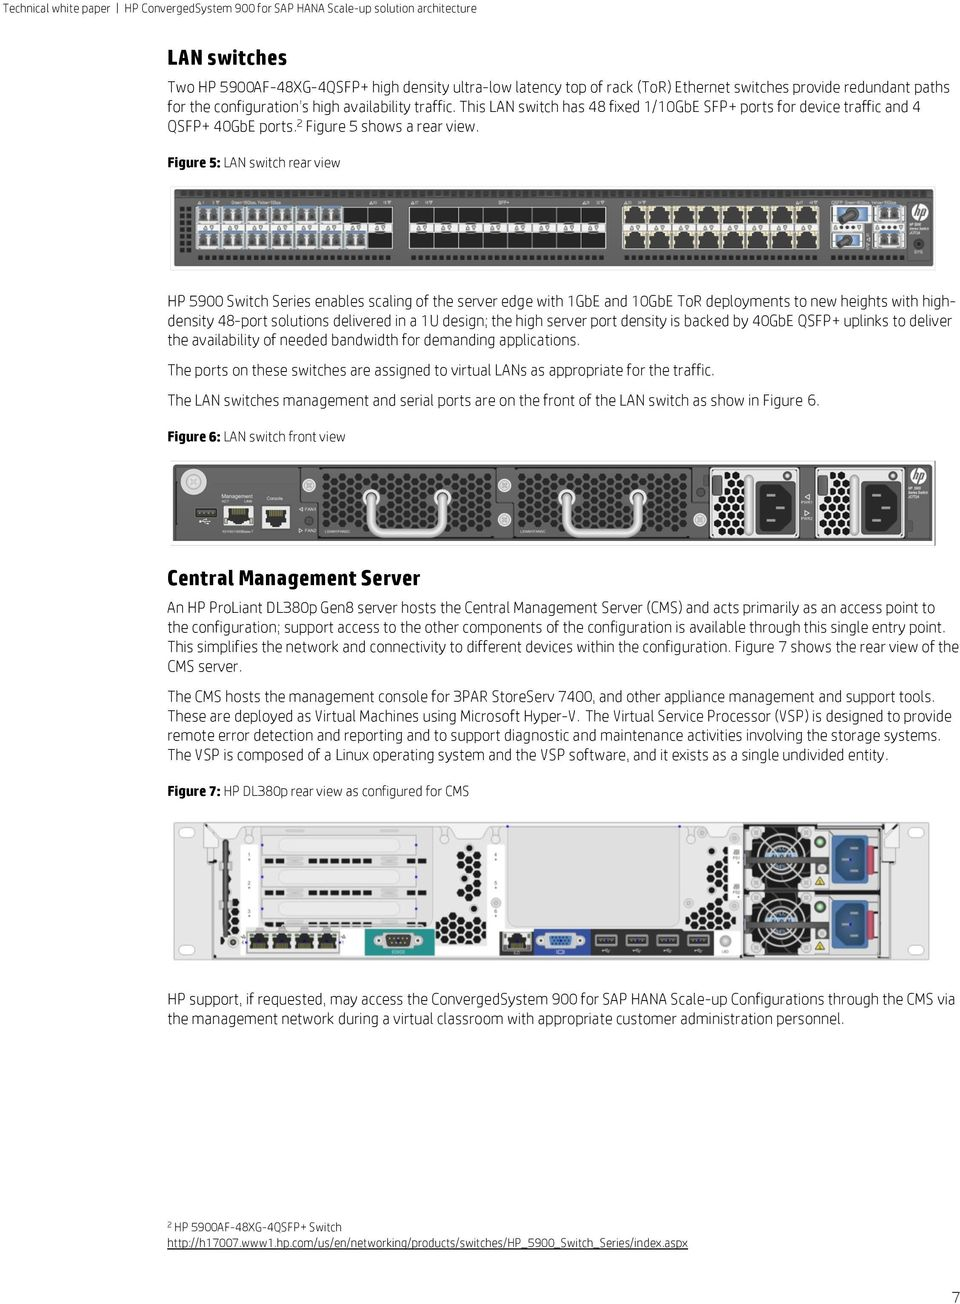 Figure 5: LAN switch rear view HP 5900 Switch Series enables scaling of the server edge with 1GbE and 10GbE ToR deployments to new heights with highdensity 48-port solutions delivered in a 1U design;